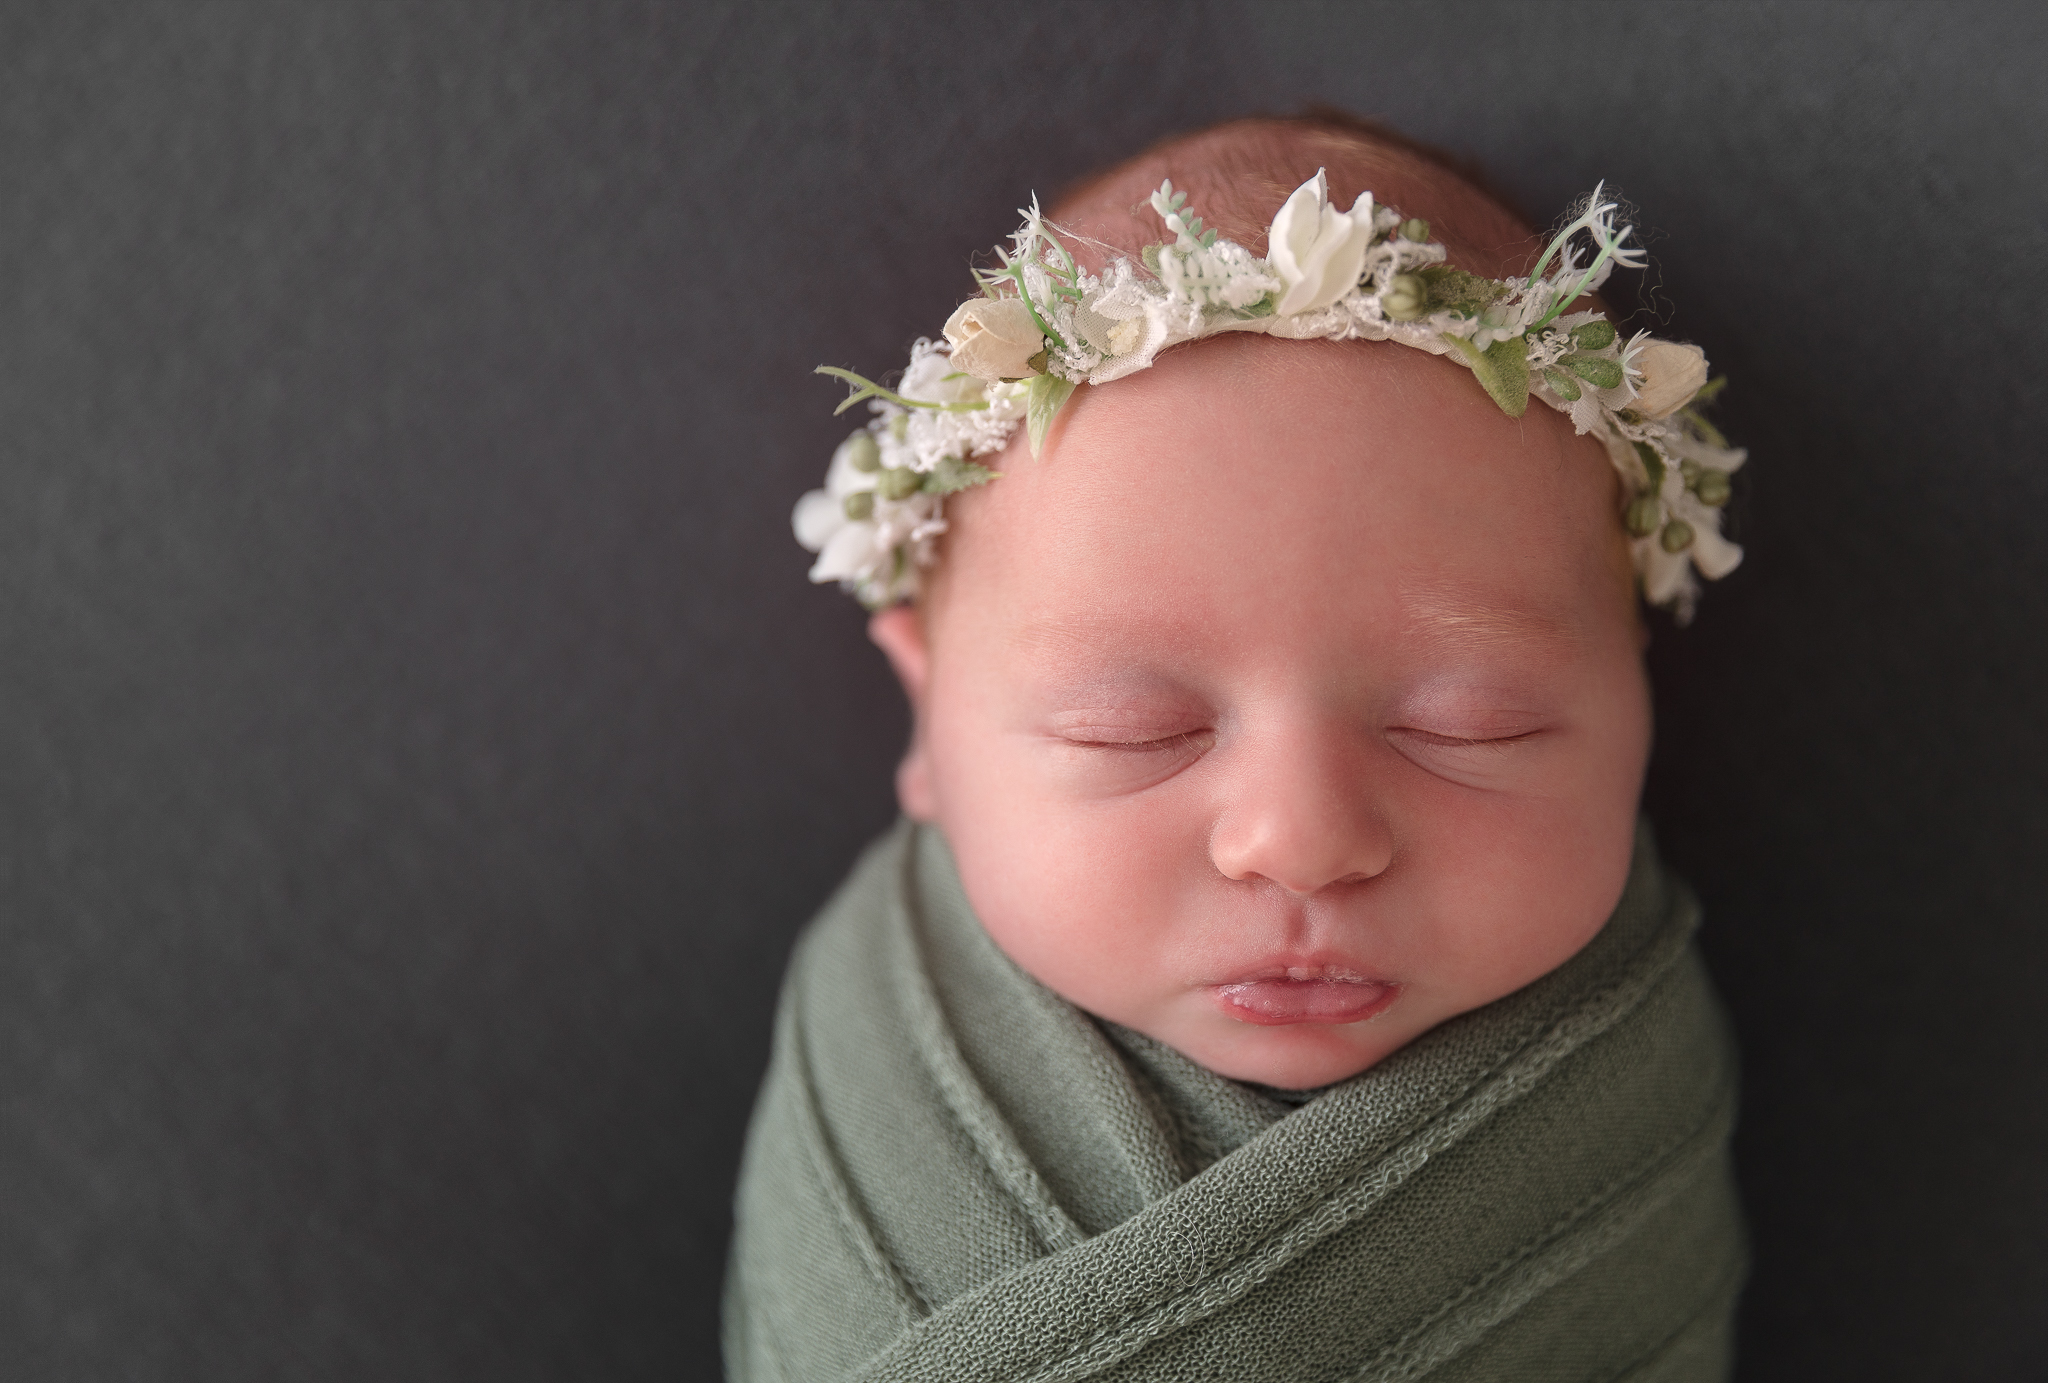 baby-newborn-photography-adelaide-halo-floral